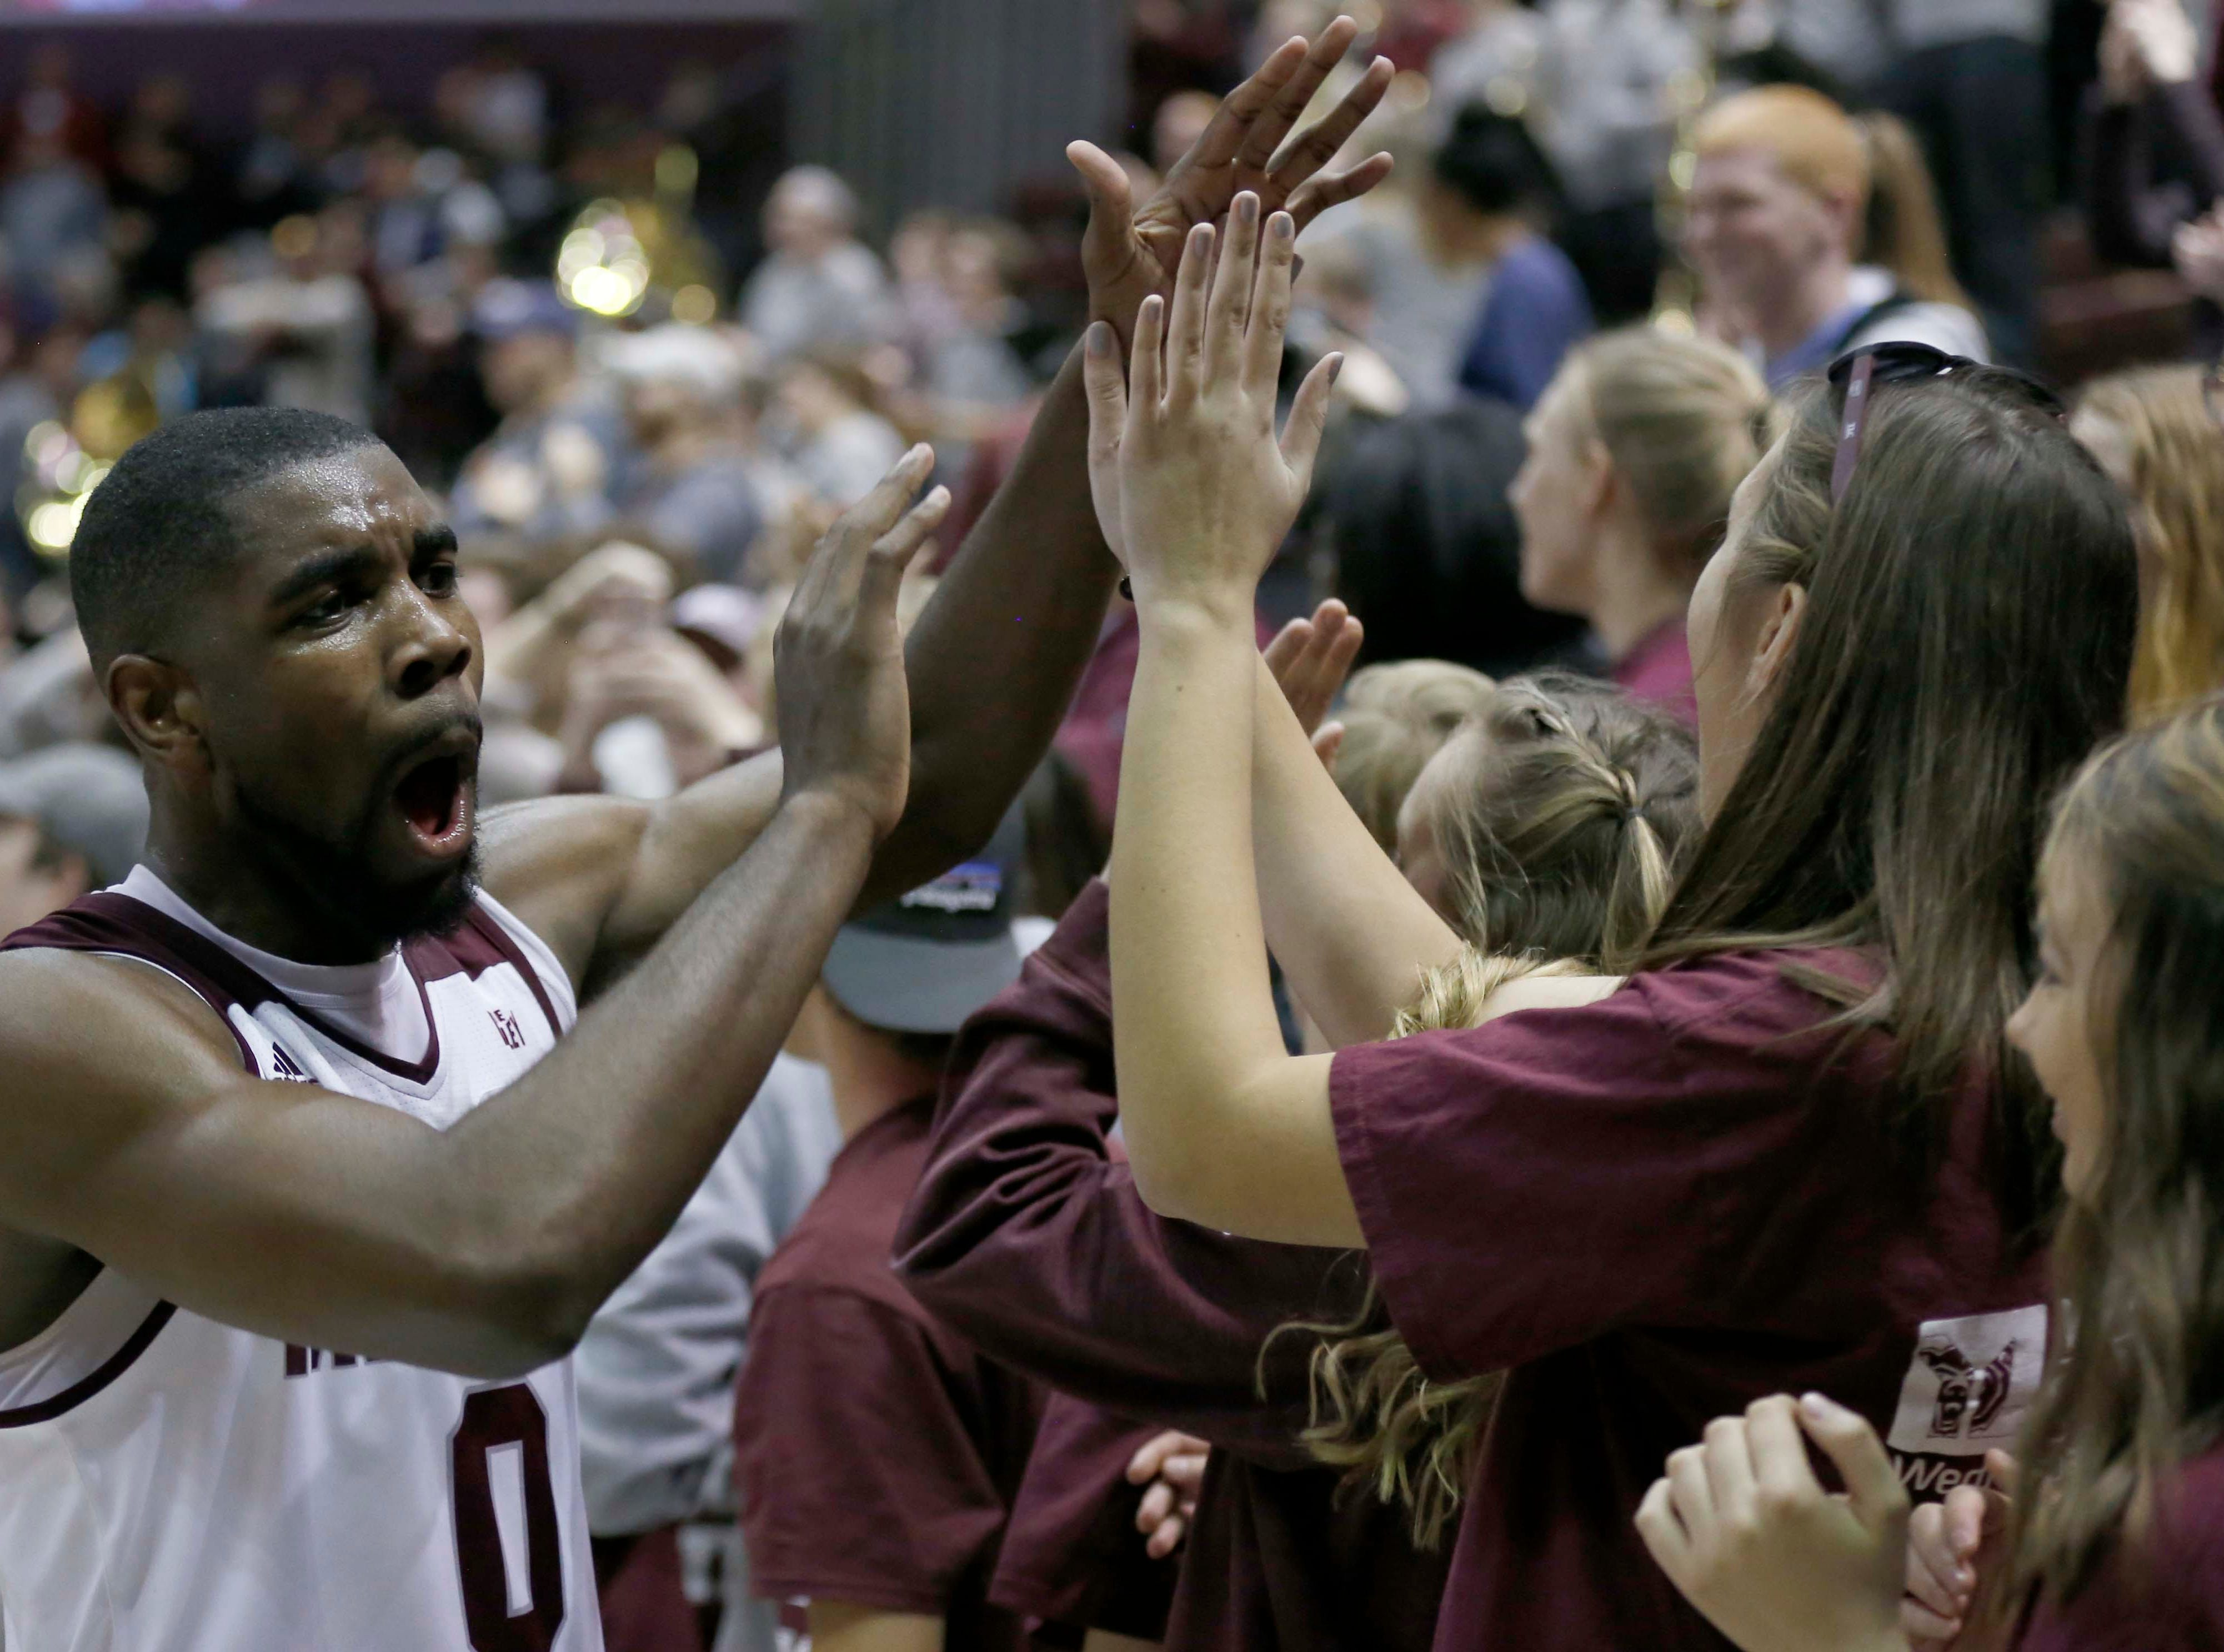 Missouri State against the Illinois State Redbirds at JQH Arena in Springfield on Feb. 10, 2019. Josh Webster celebrates with fans after the game.